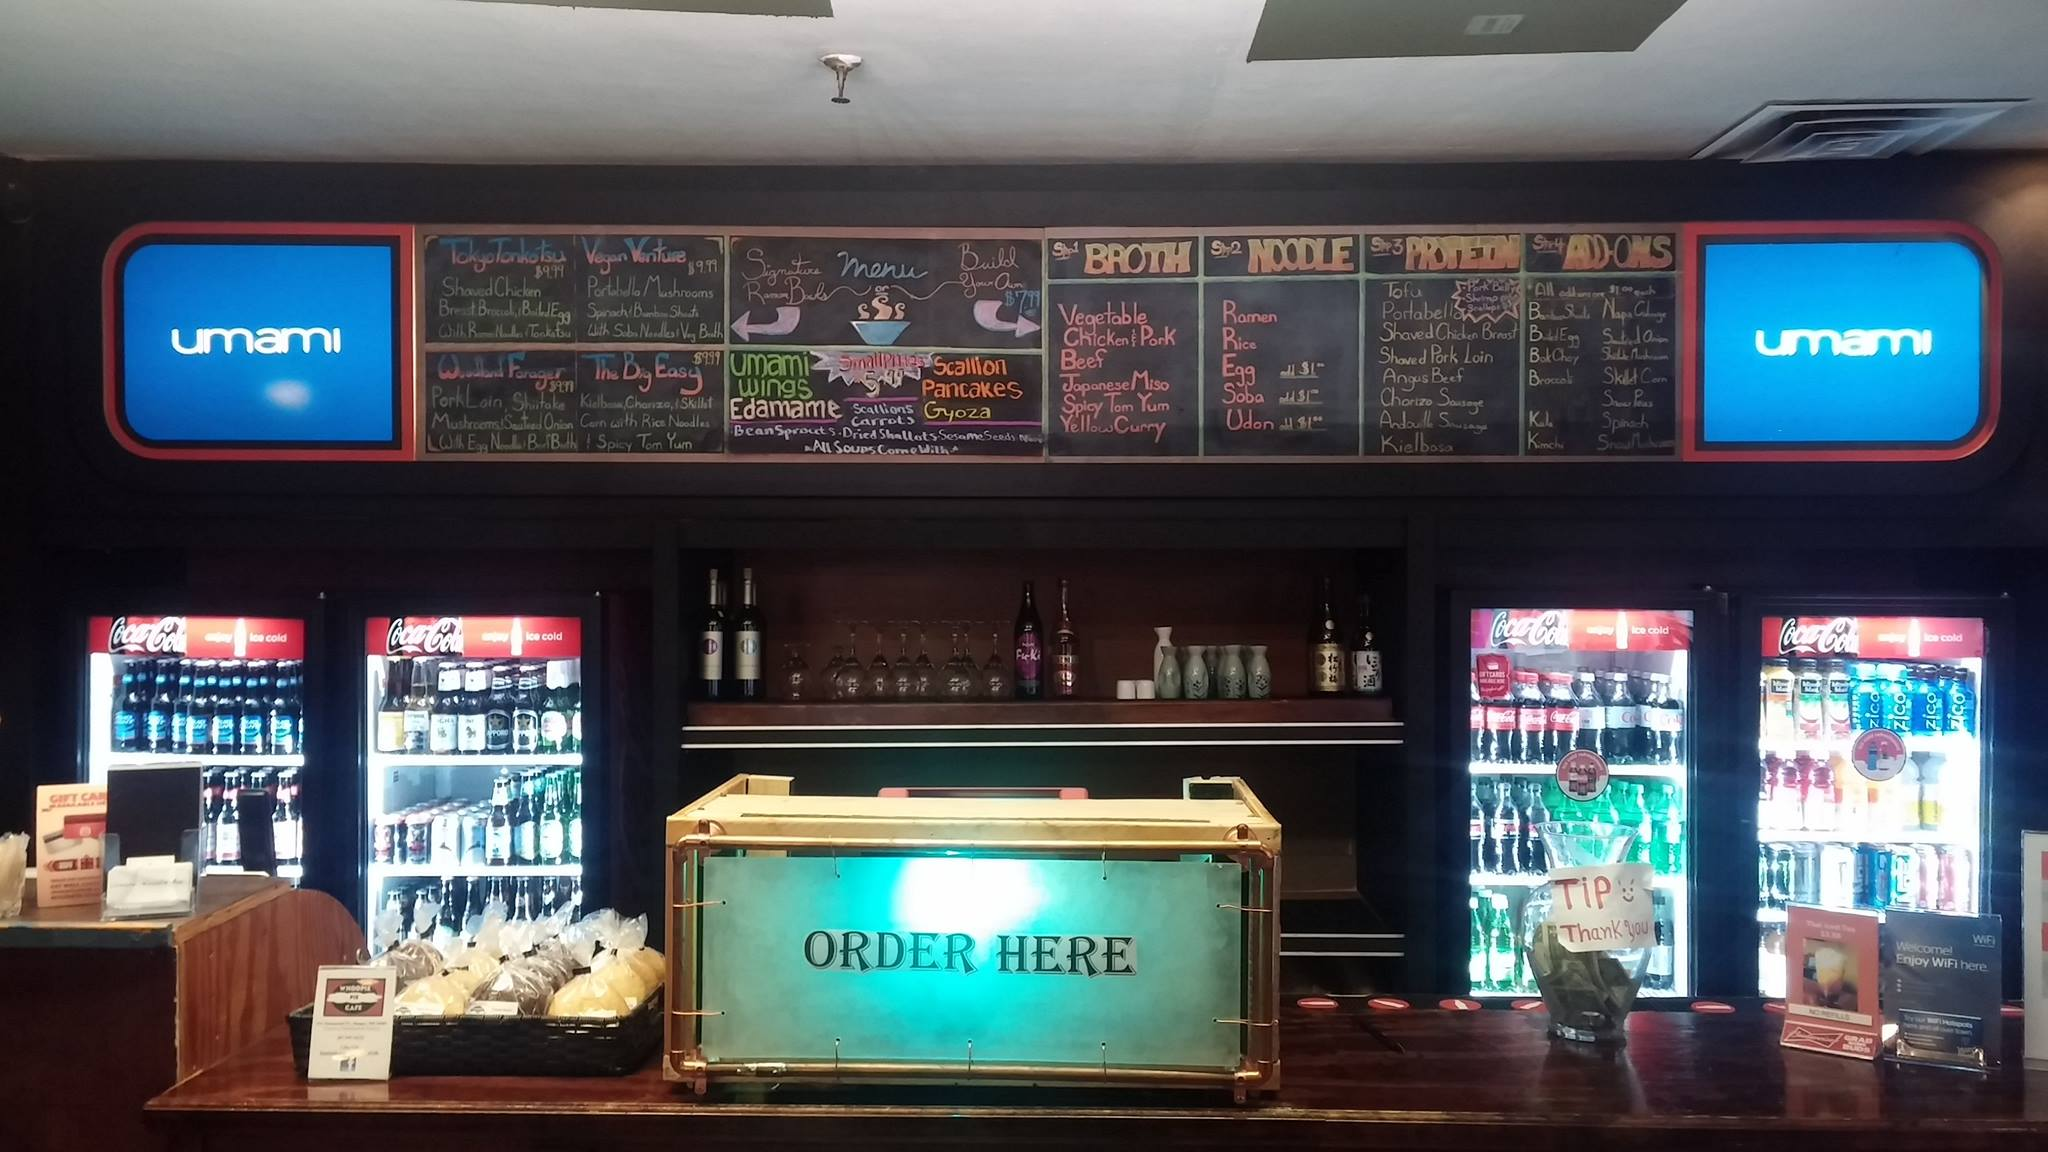 Umami Noodle Bar in Bangor is already open until 3 a.m. and would be happy to serve alcohol until 2 a.m.